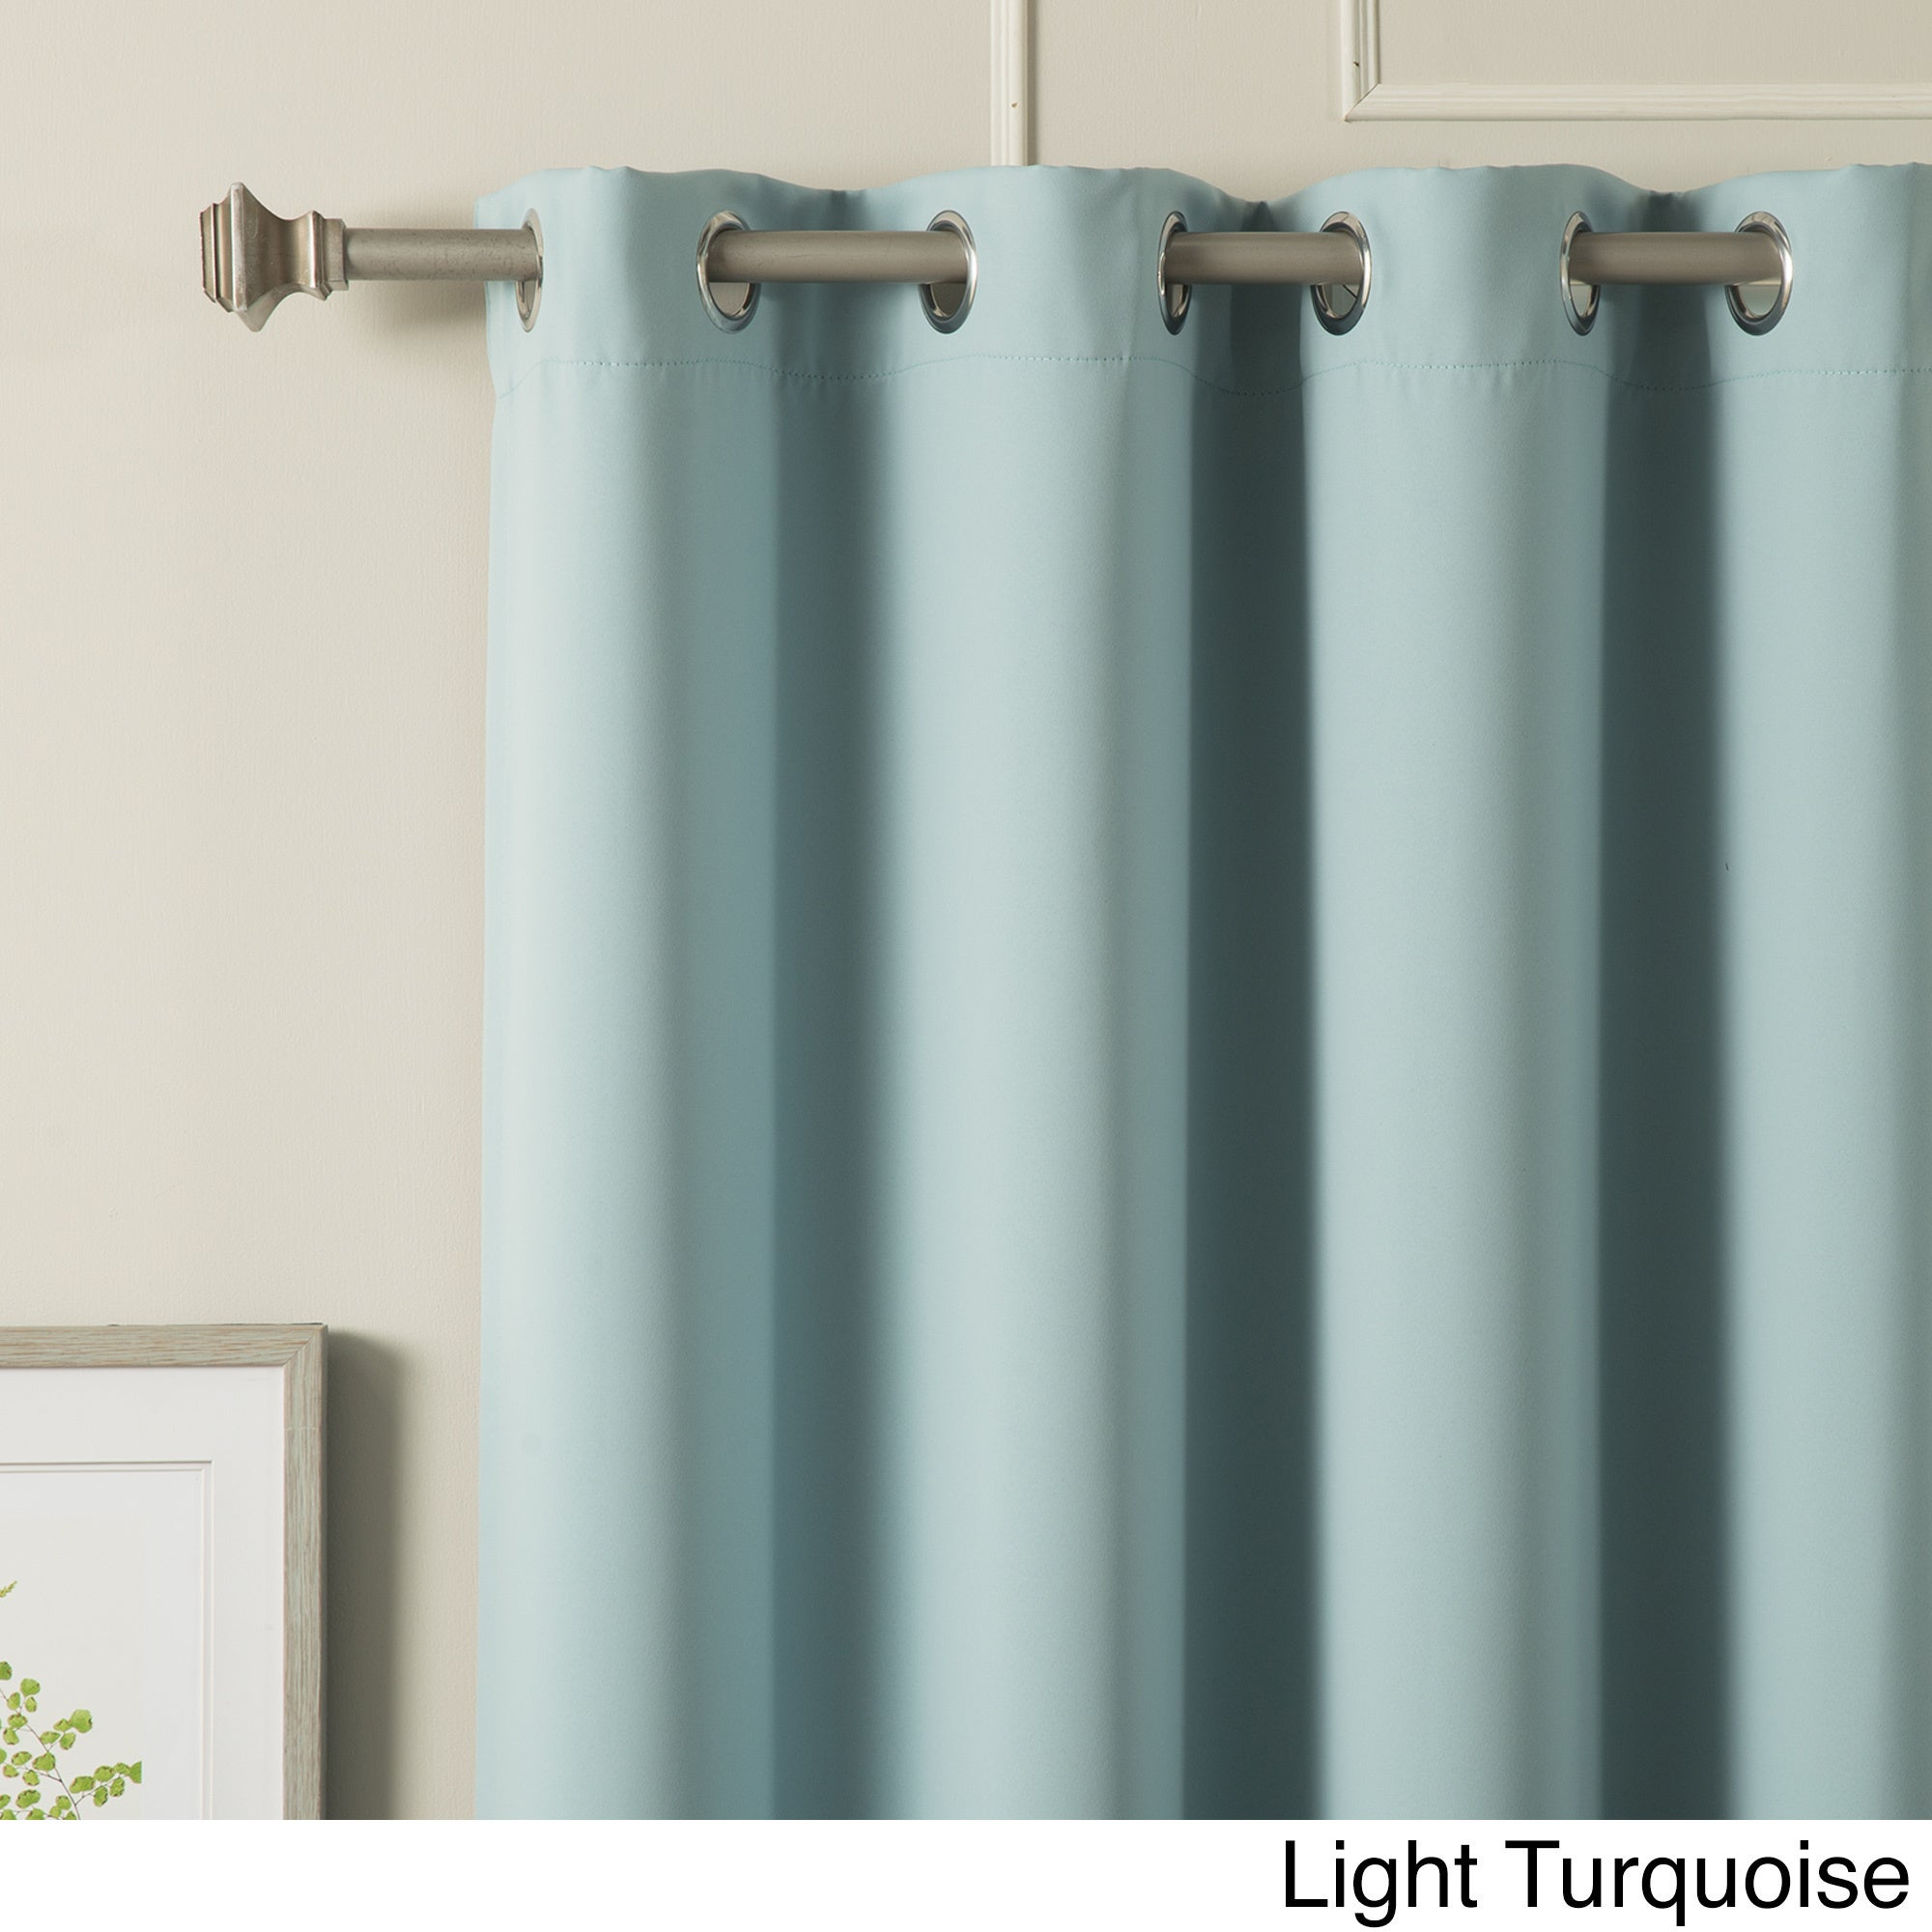 Aurora Home Silvertone Grommet Top Thermal Insulated Blackout Curtain Panel Pair Regarding Silvertone Grommet Thermal Insulated Blackout Curtain Panel Pairs (View 10 of 30)